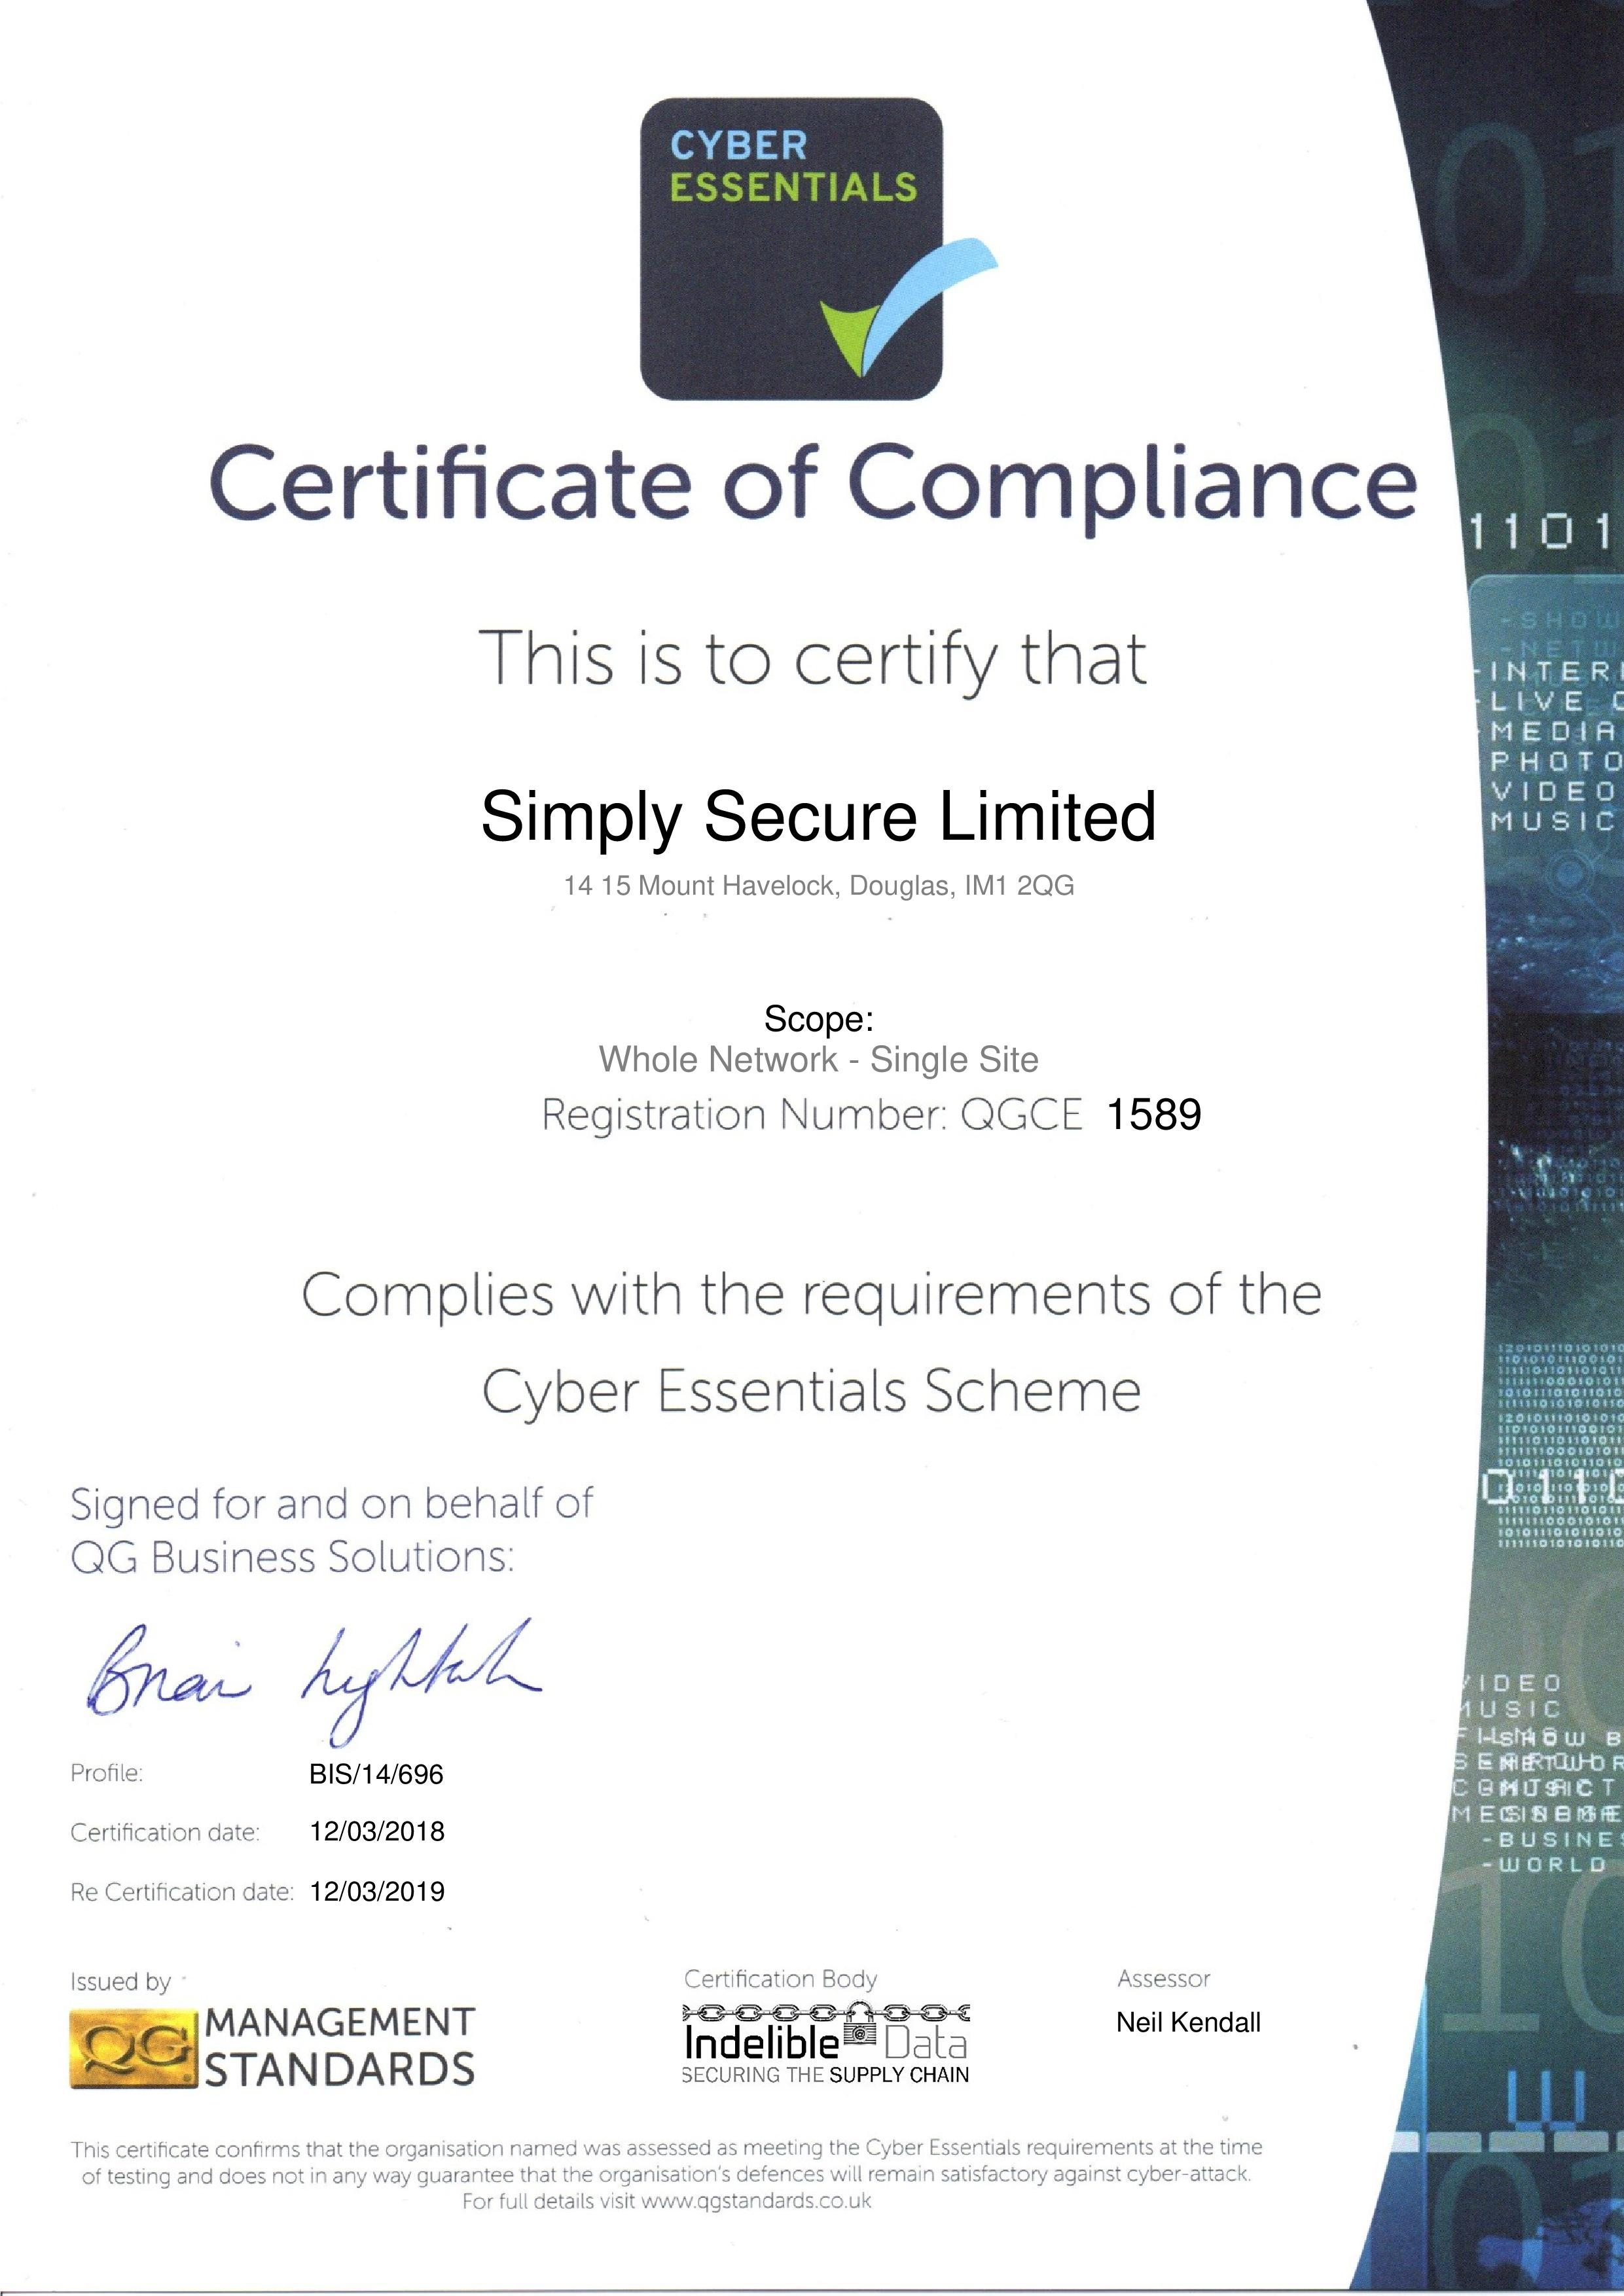 QGCE1589 Simply Secure Limited